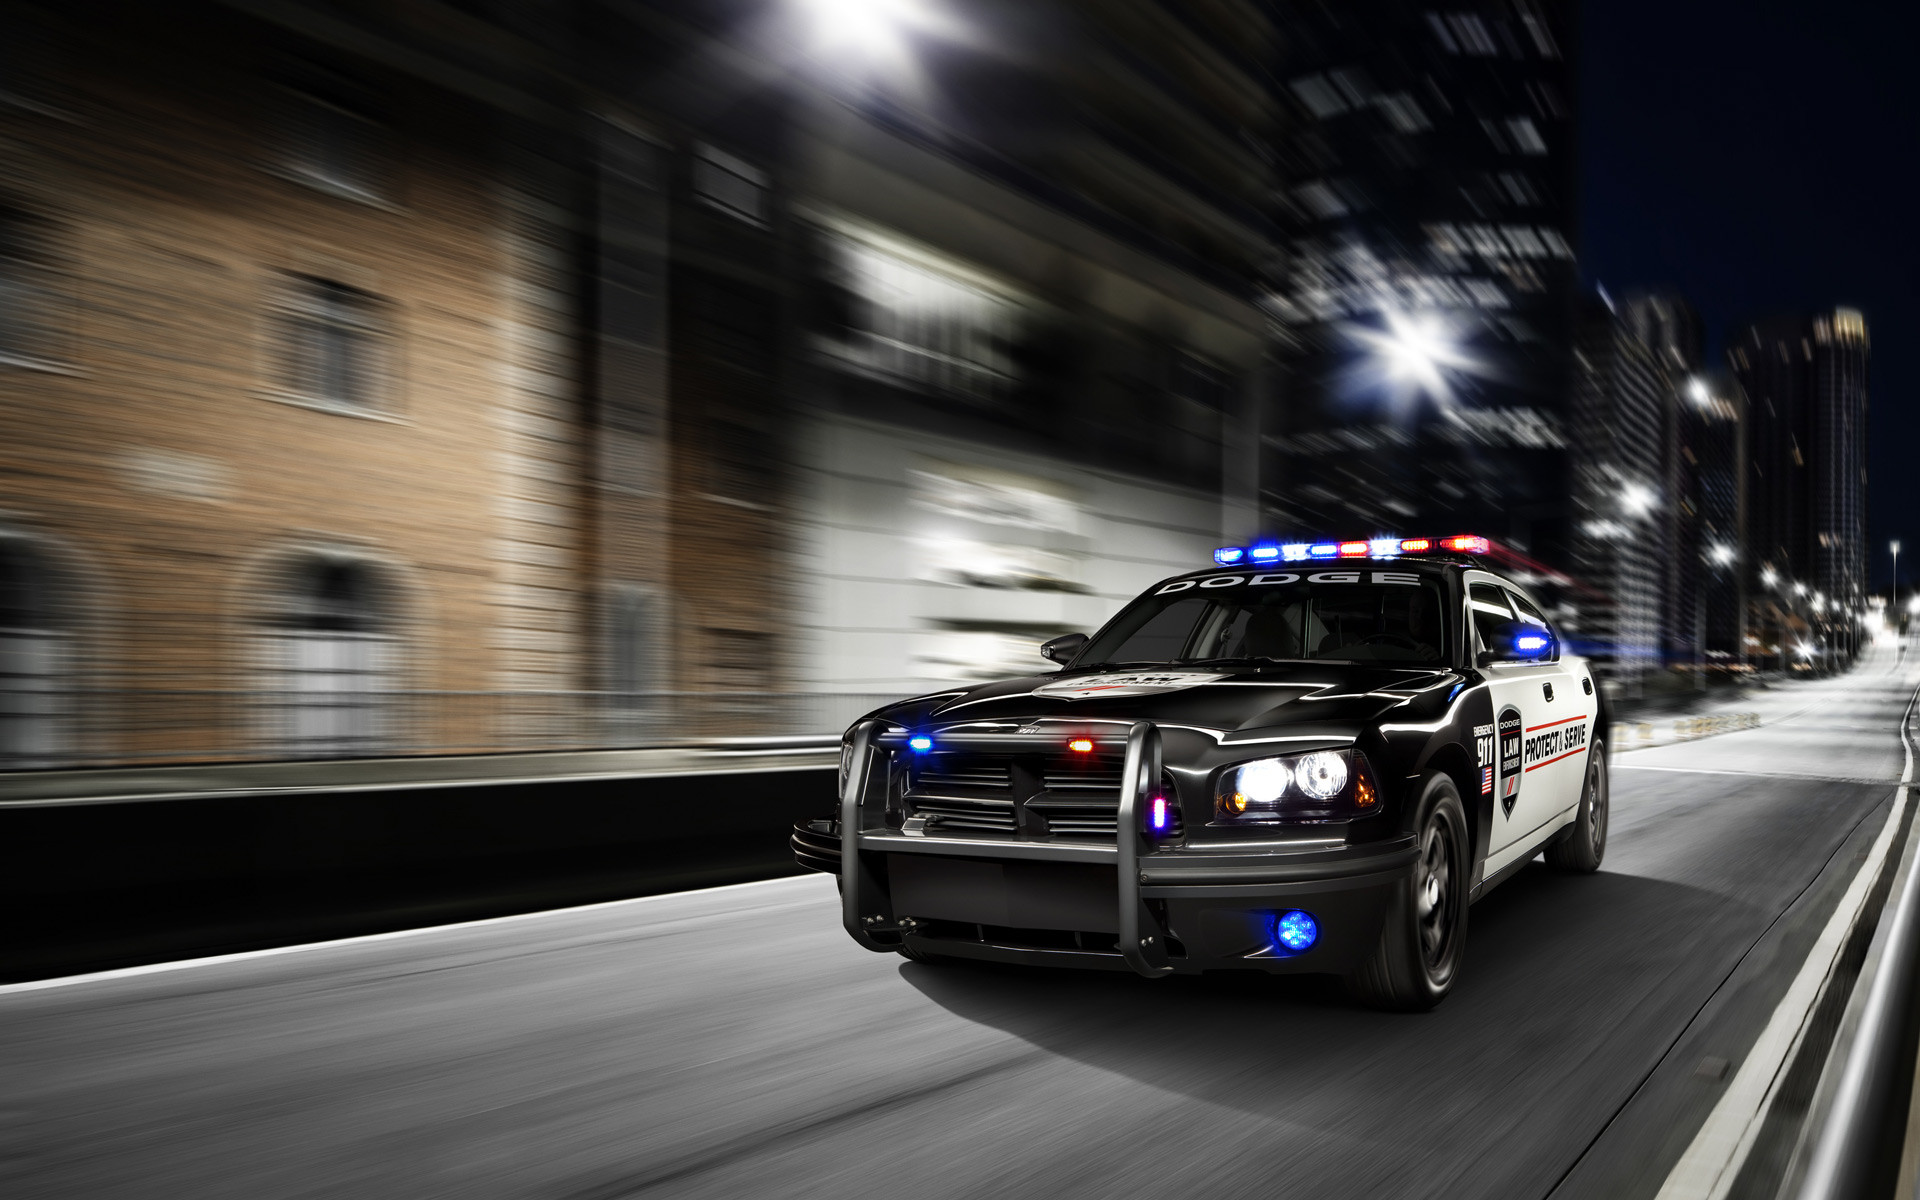 1920x1200 Police Car Wallpapers Photo